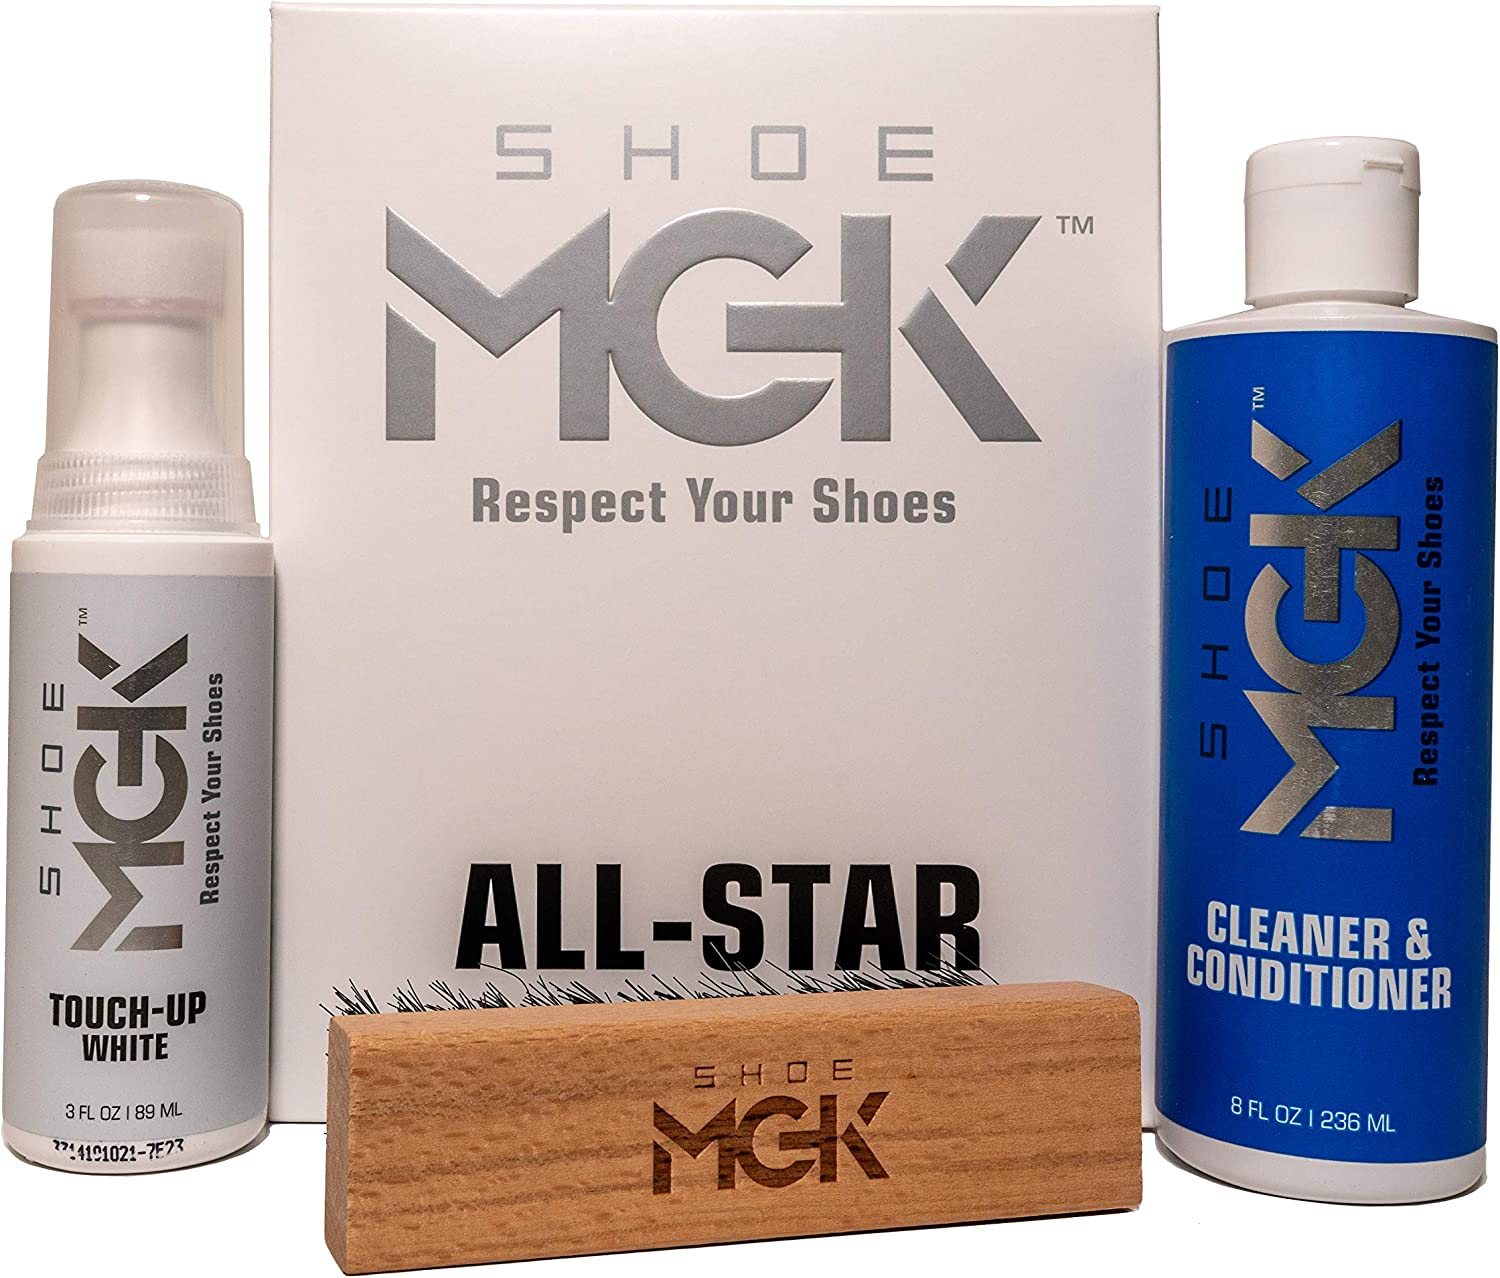 SHOE MGK All-Star Kit with Touch-Up